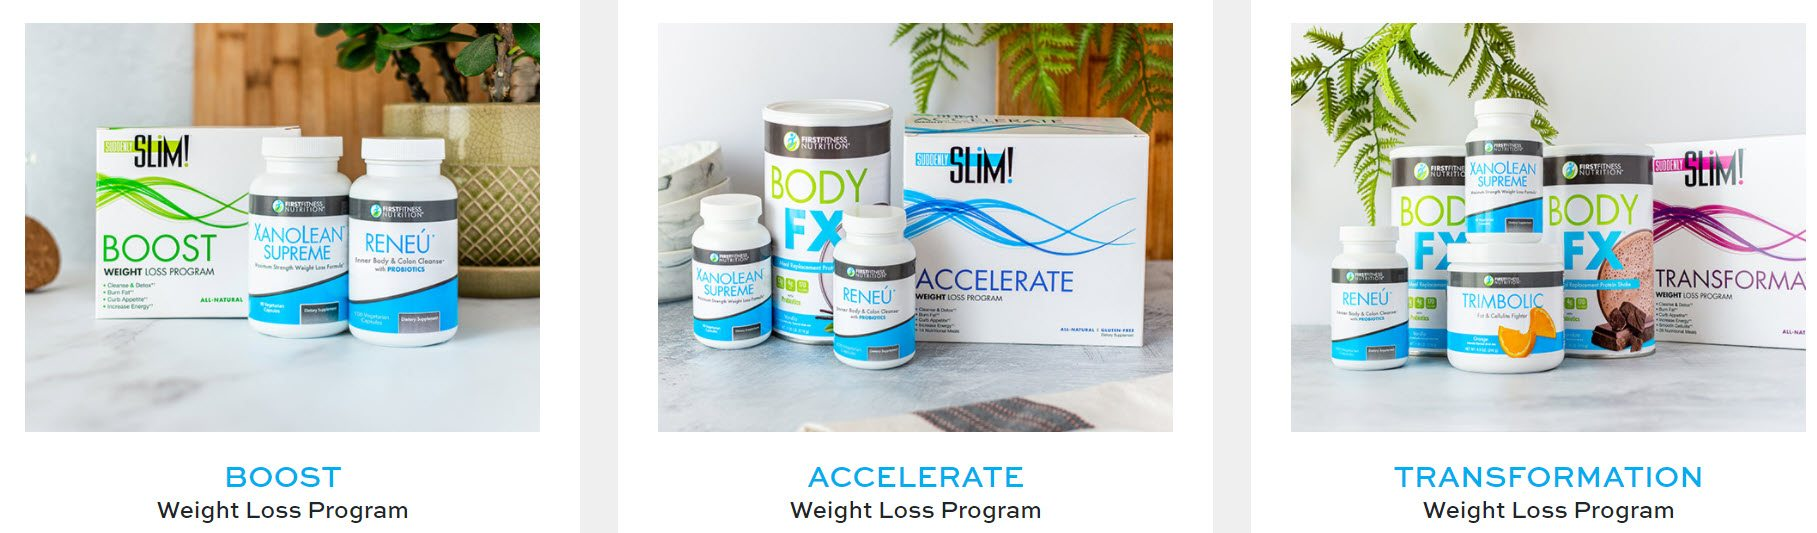 weight loss mlm programs - products